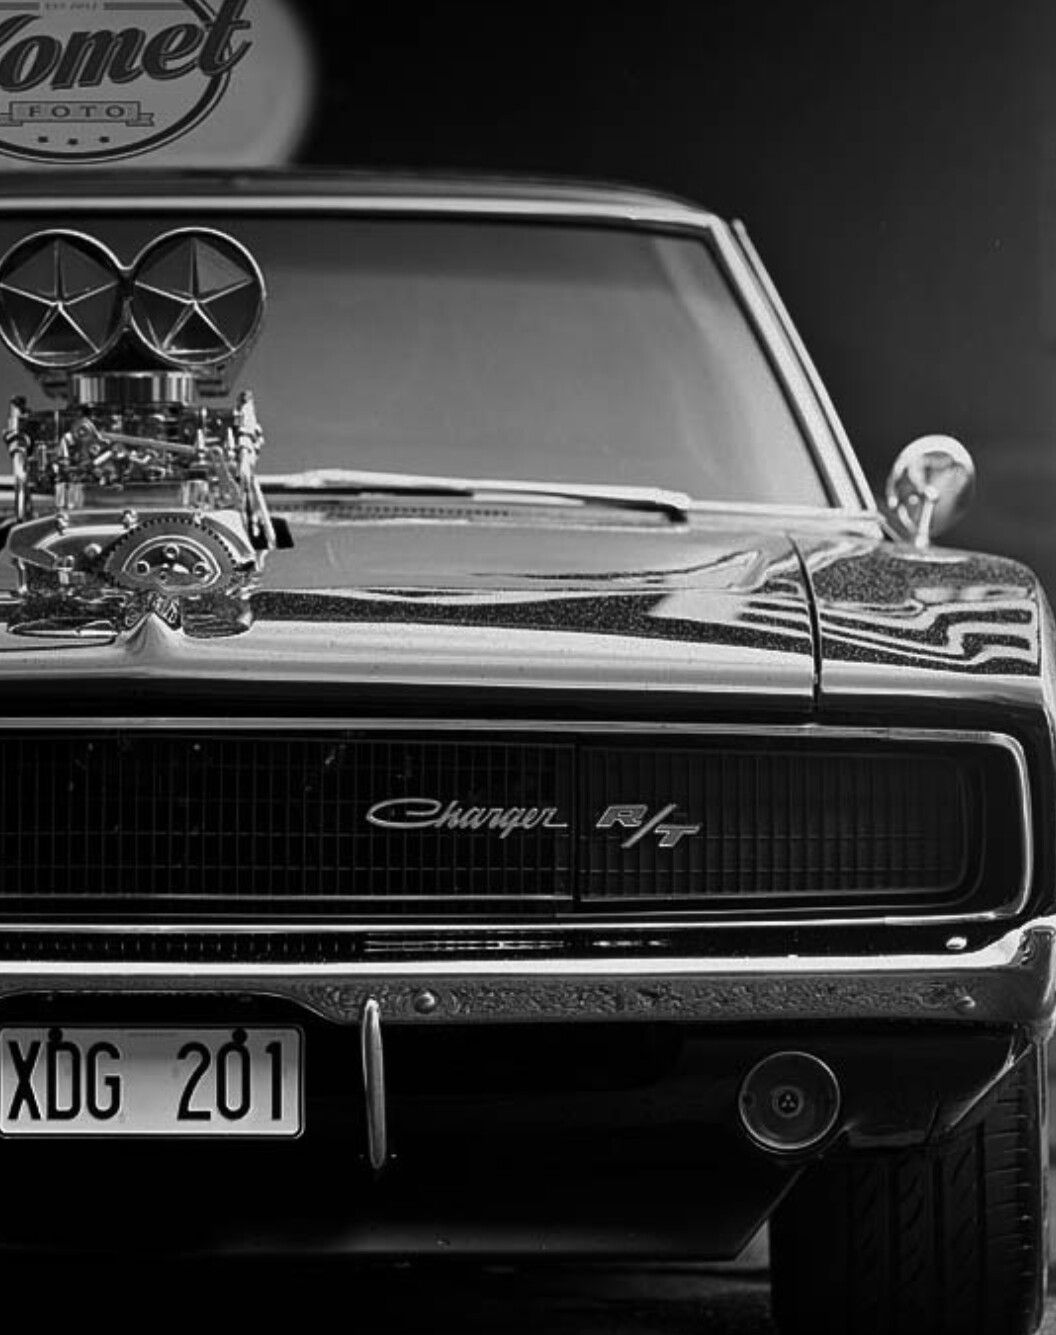 Pin By Ren1576 On Amazing Cars Muscle Cars Car Wheels Cars